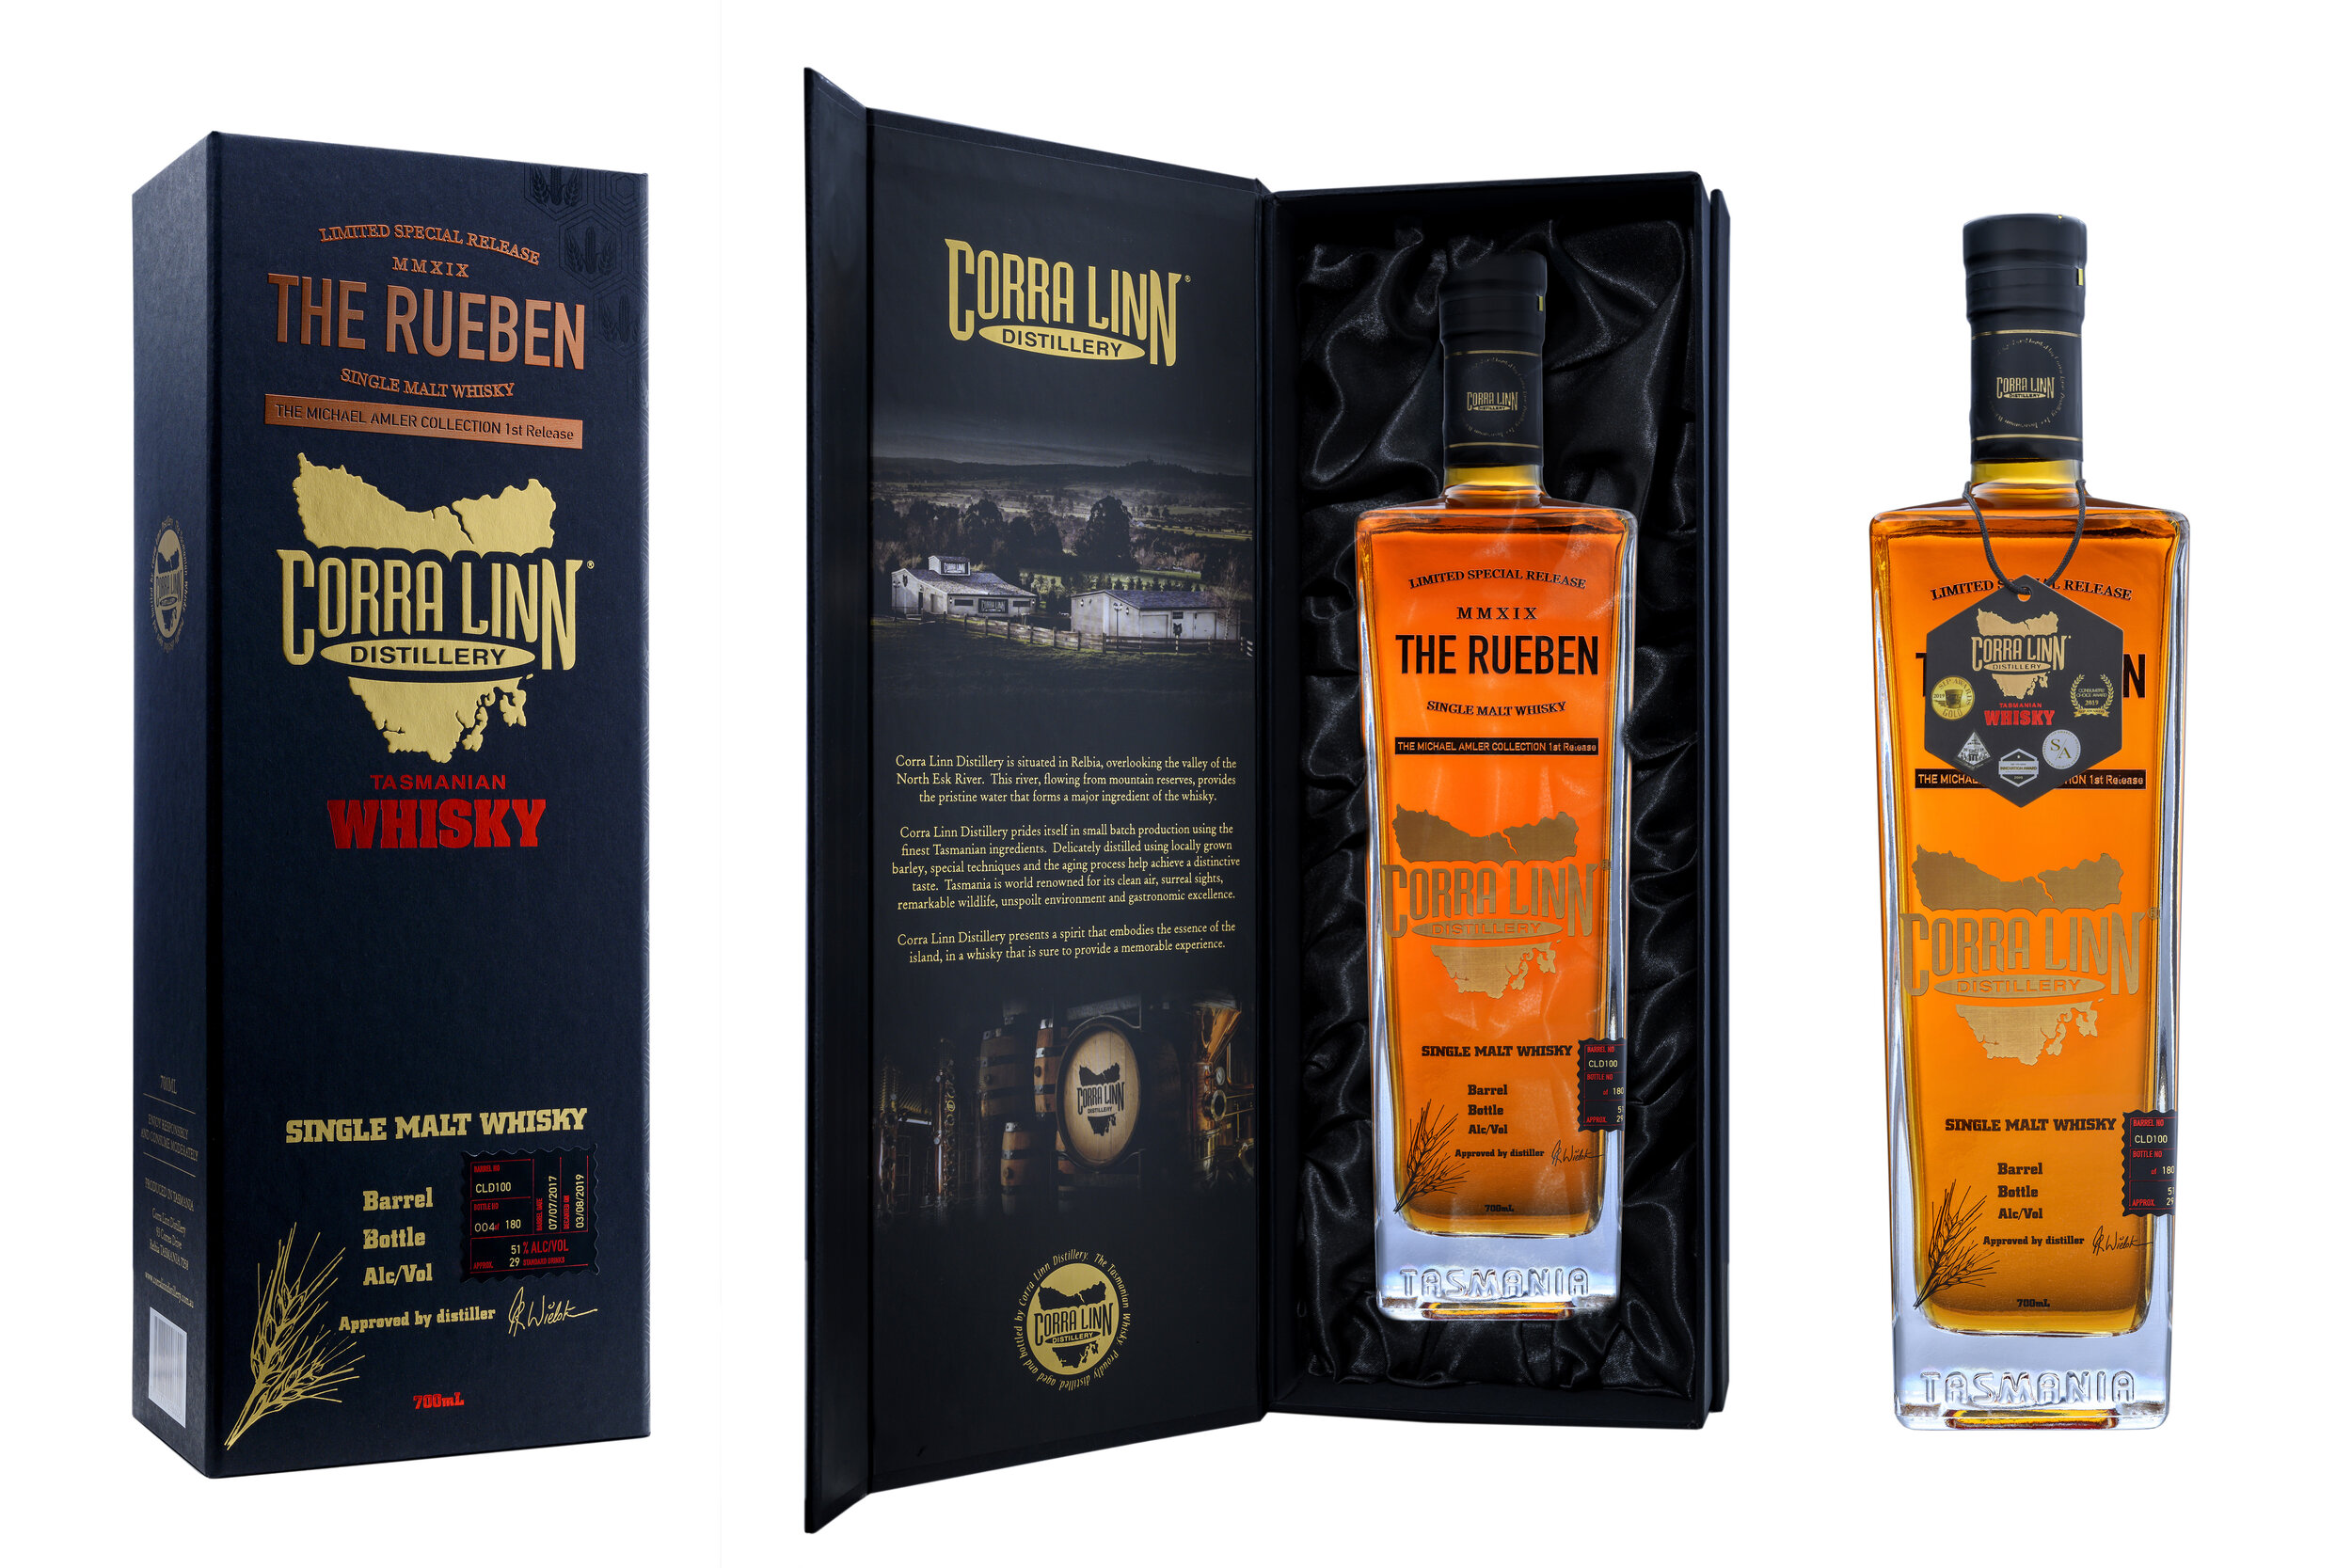 Limited special release - The Rueben Single Malt Whisky